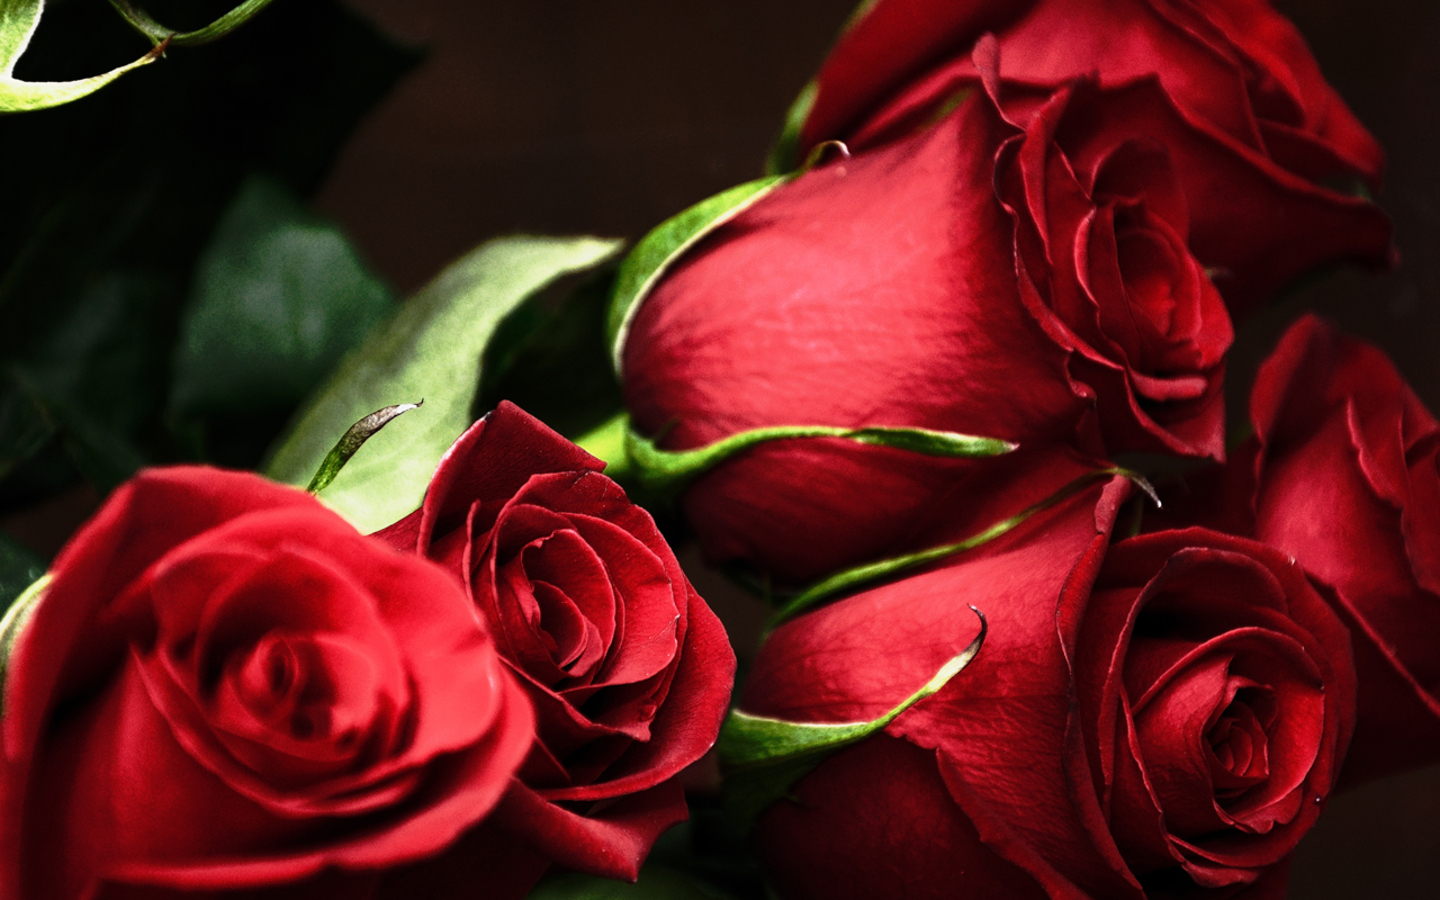 red roses most popular rose rose wallpapers beautiful rose red 1440x900